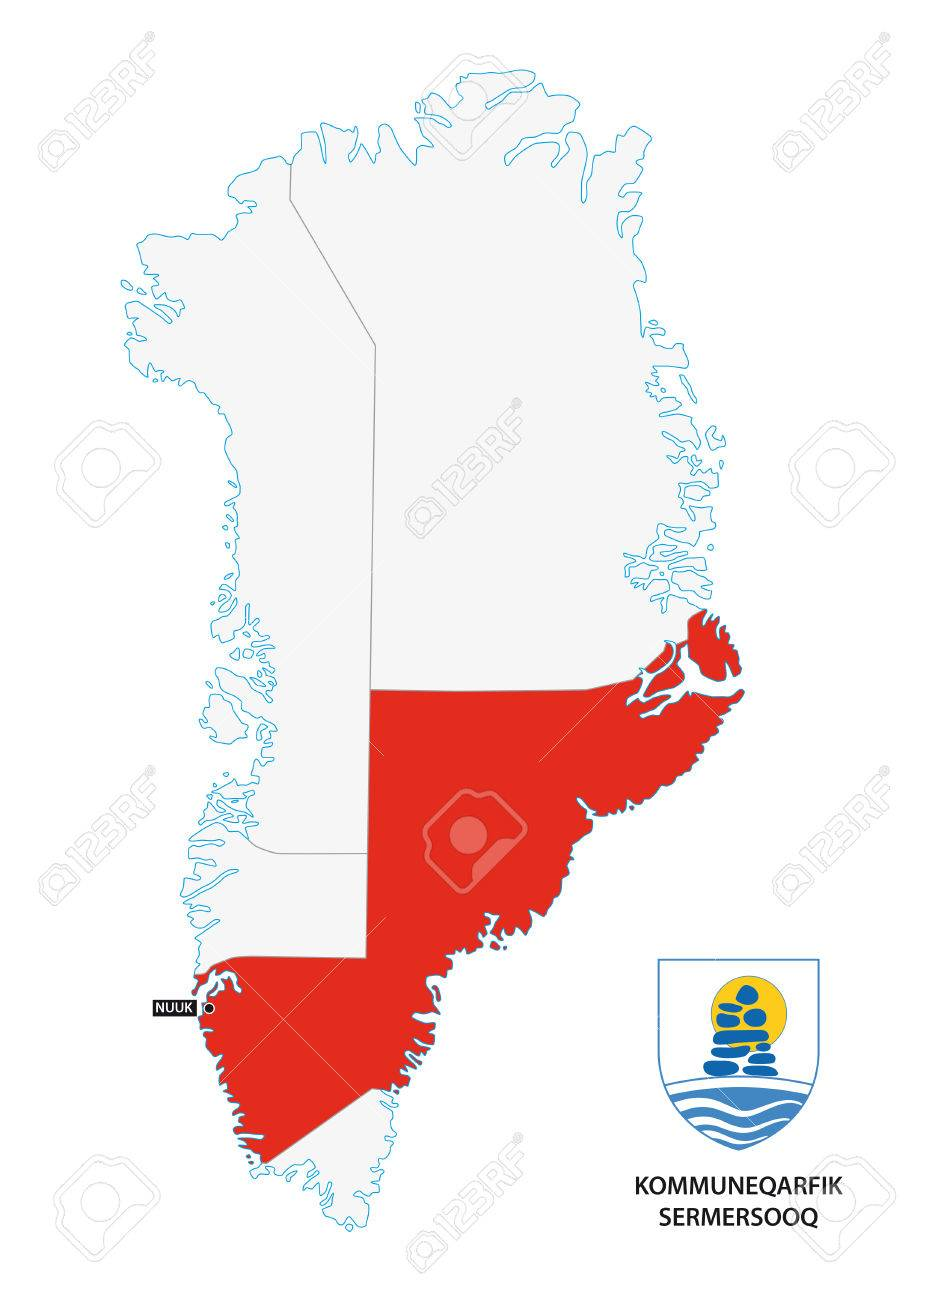 Administrative Map Of Greenland Sermersooq Municipality With